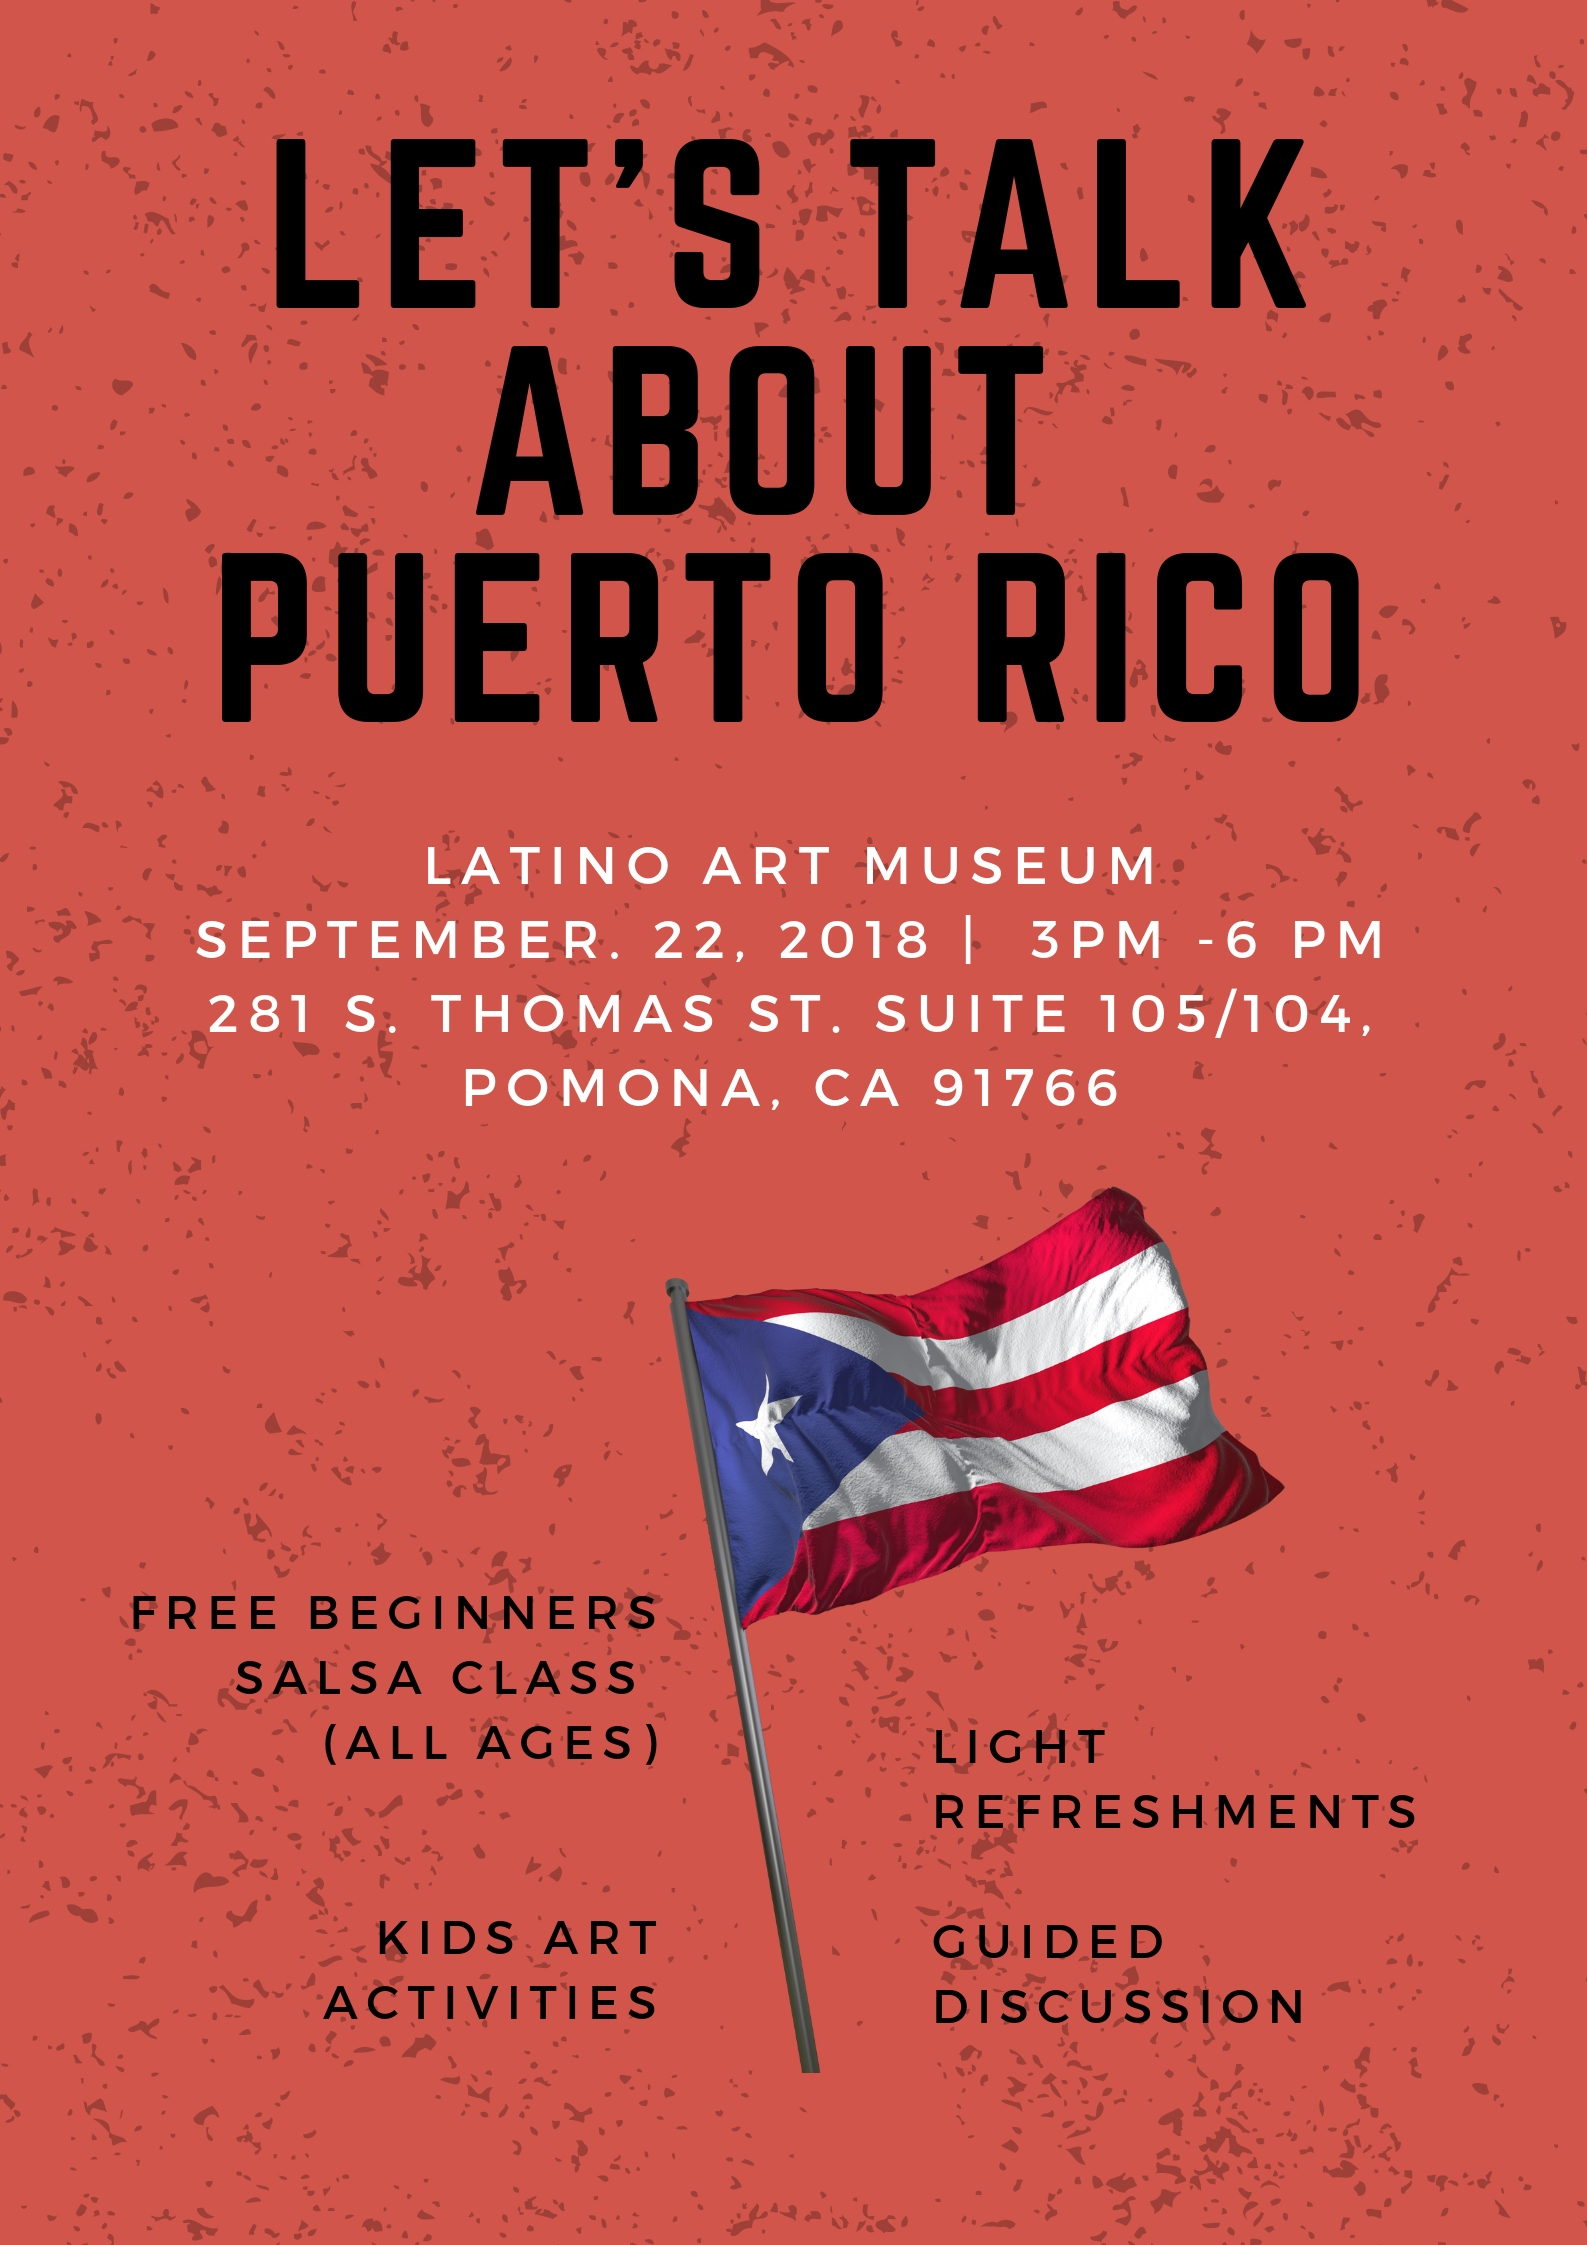 Let's Talk about Puerto rico1.jpg